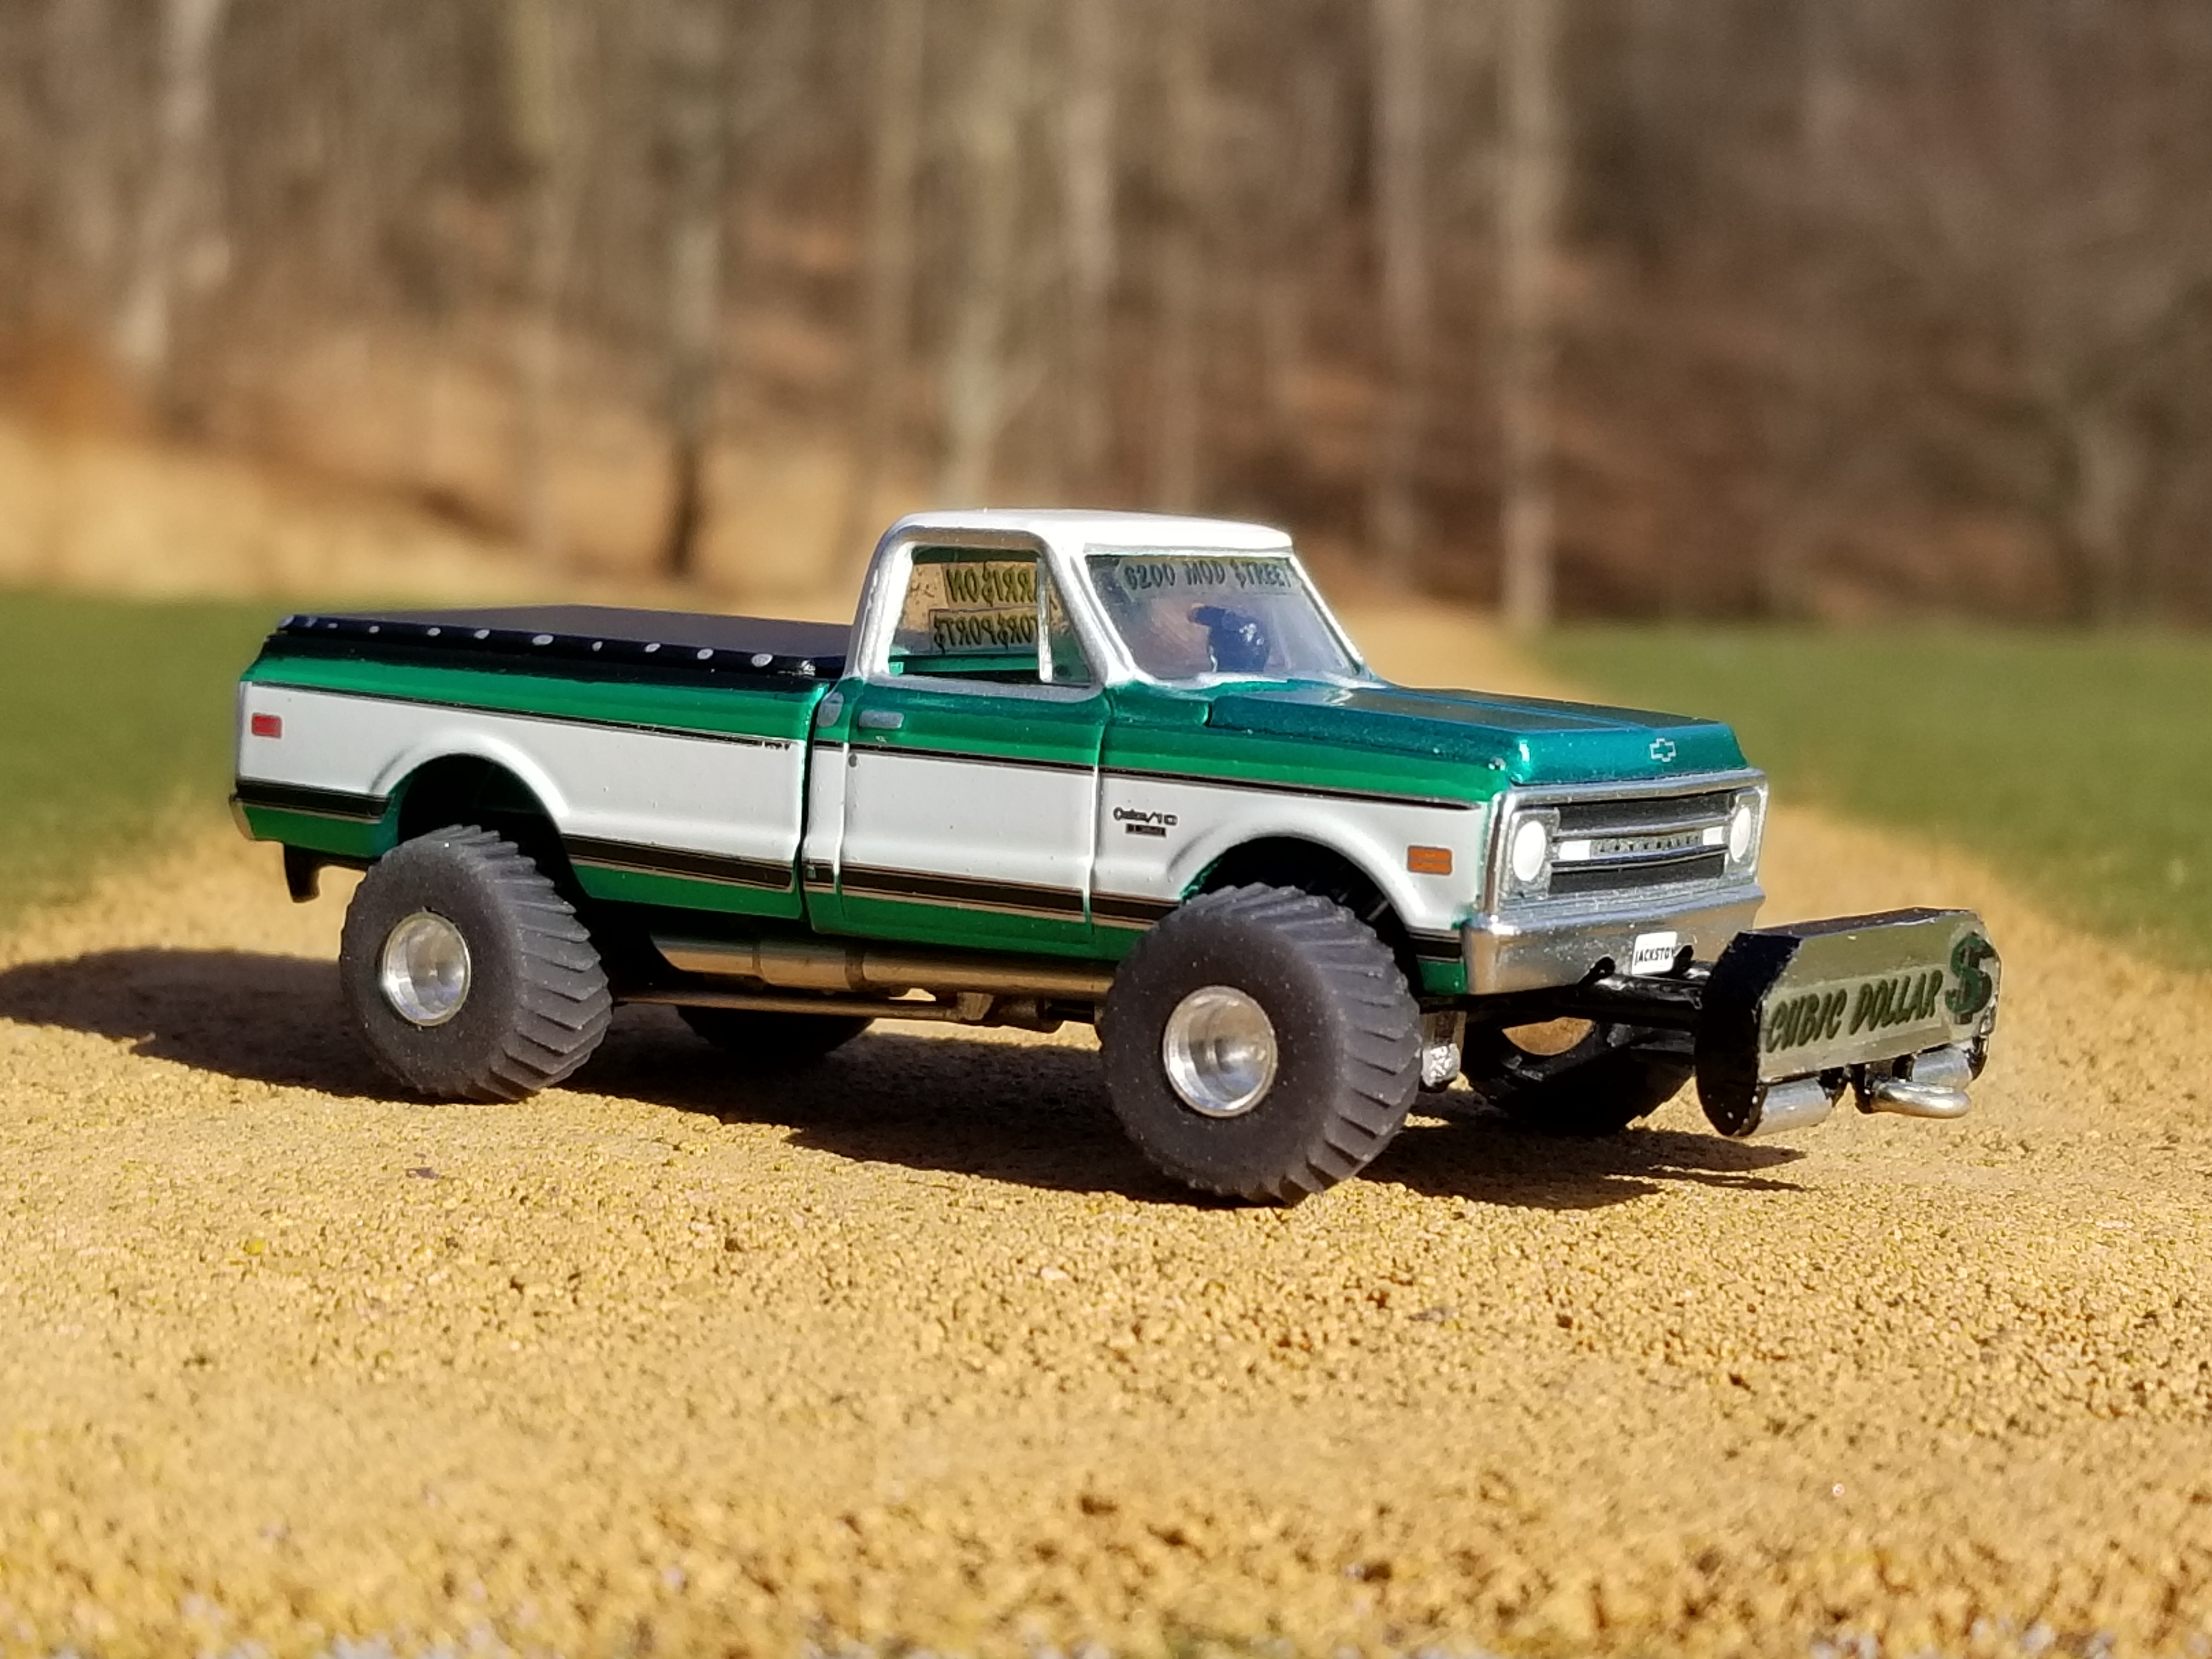 1/64th Scale Pulling Truck